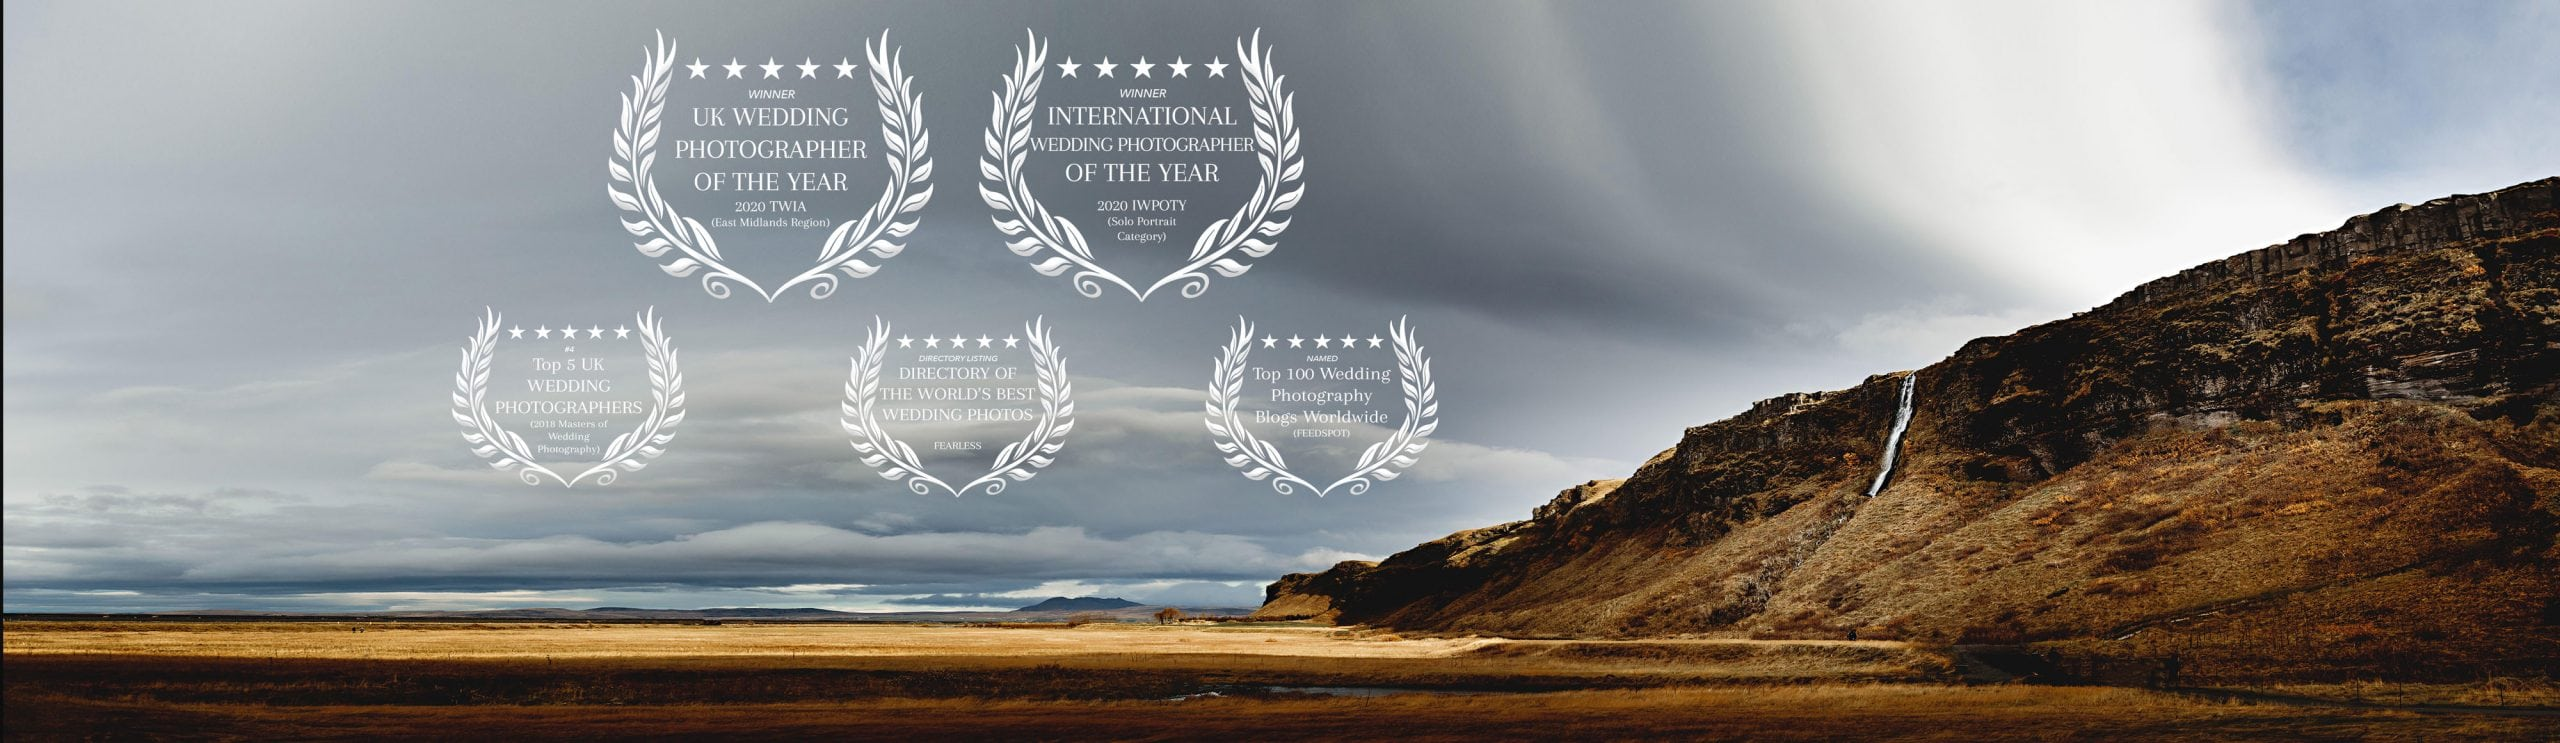 an iceland landscape showing all the international awards won by derbyshire wedding photographer hba photography